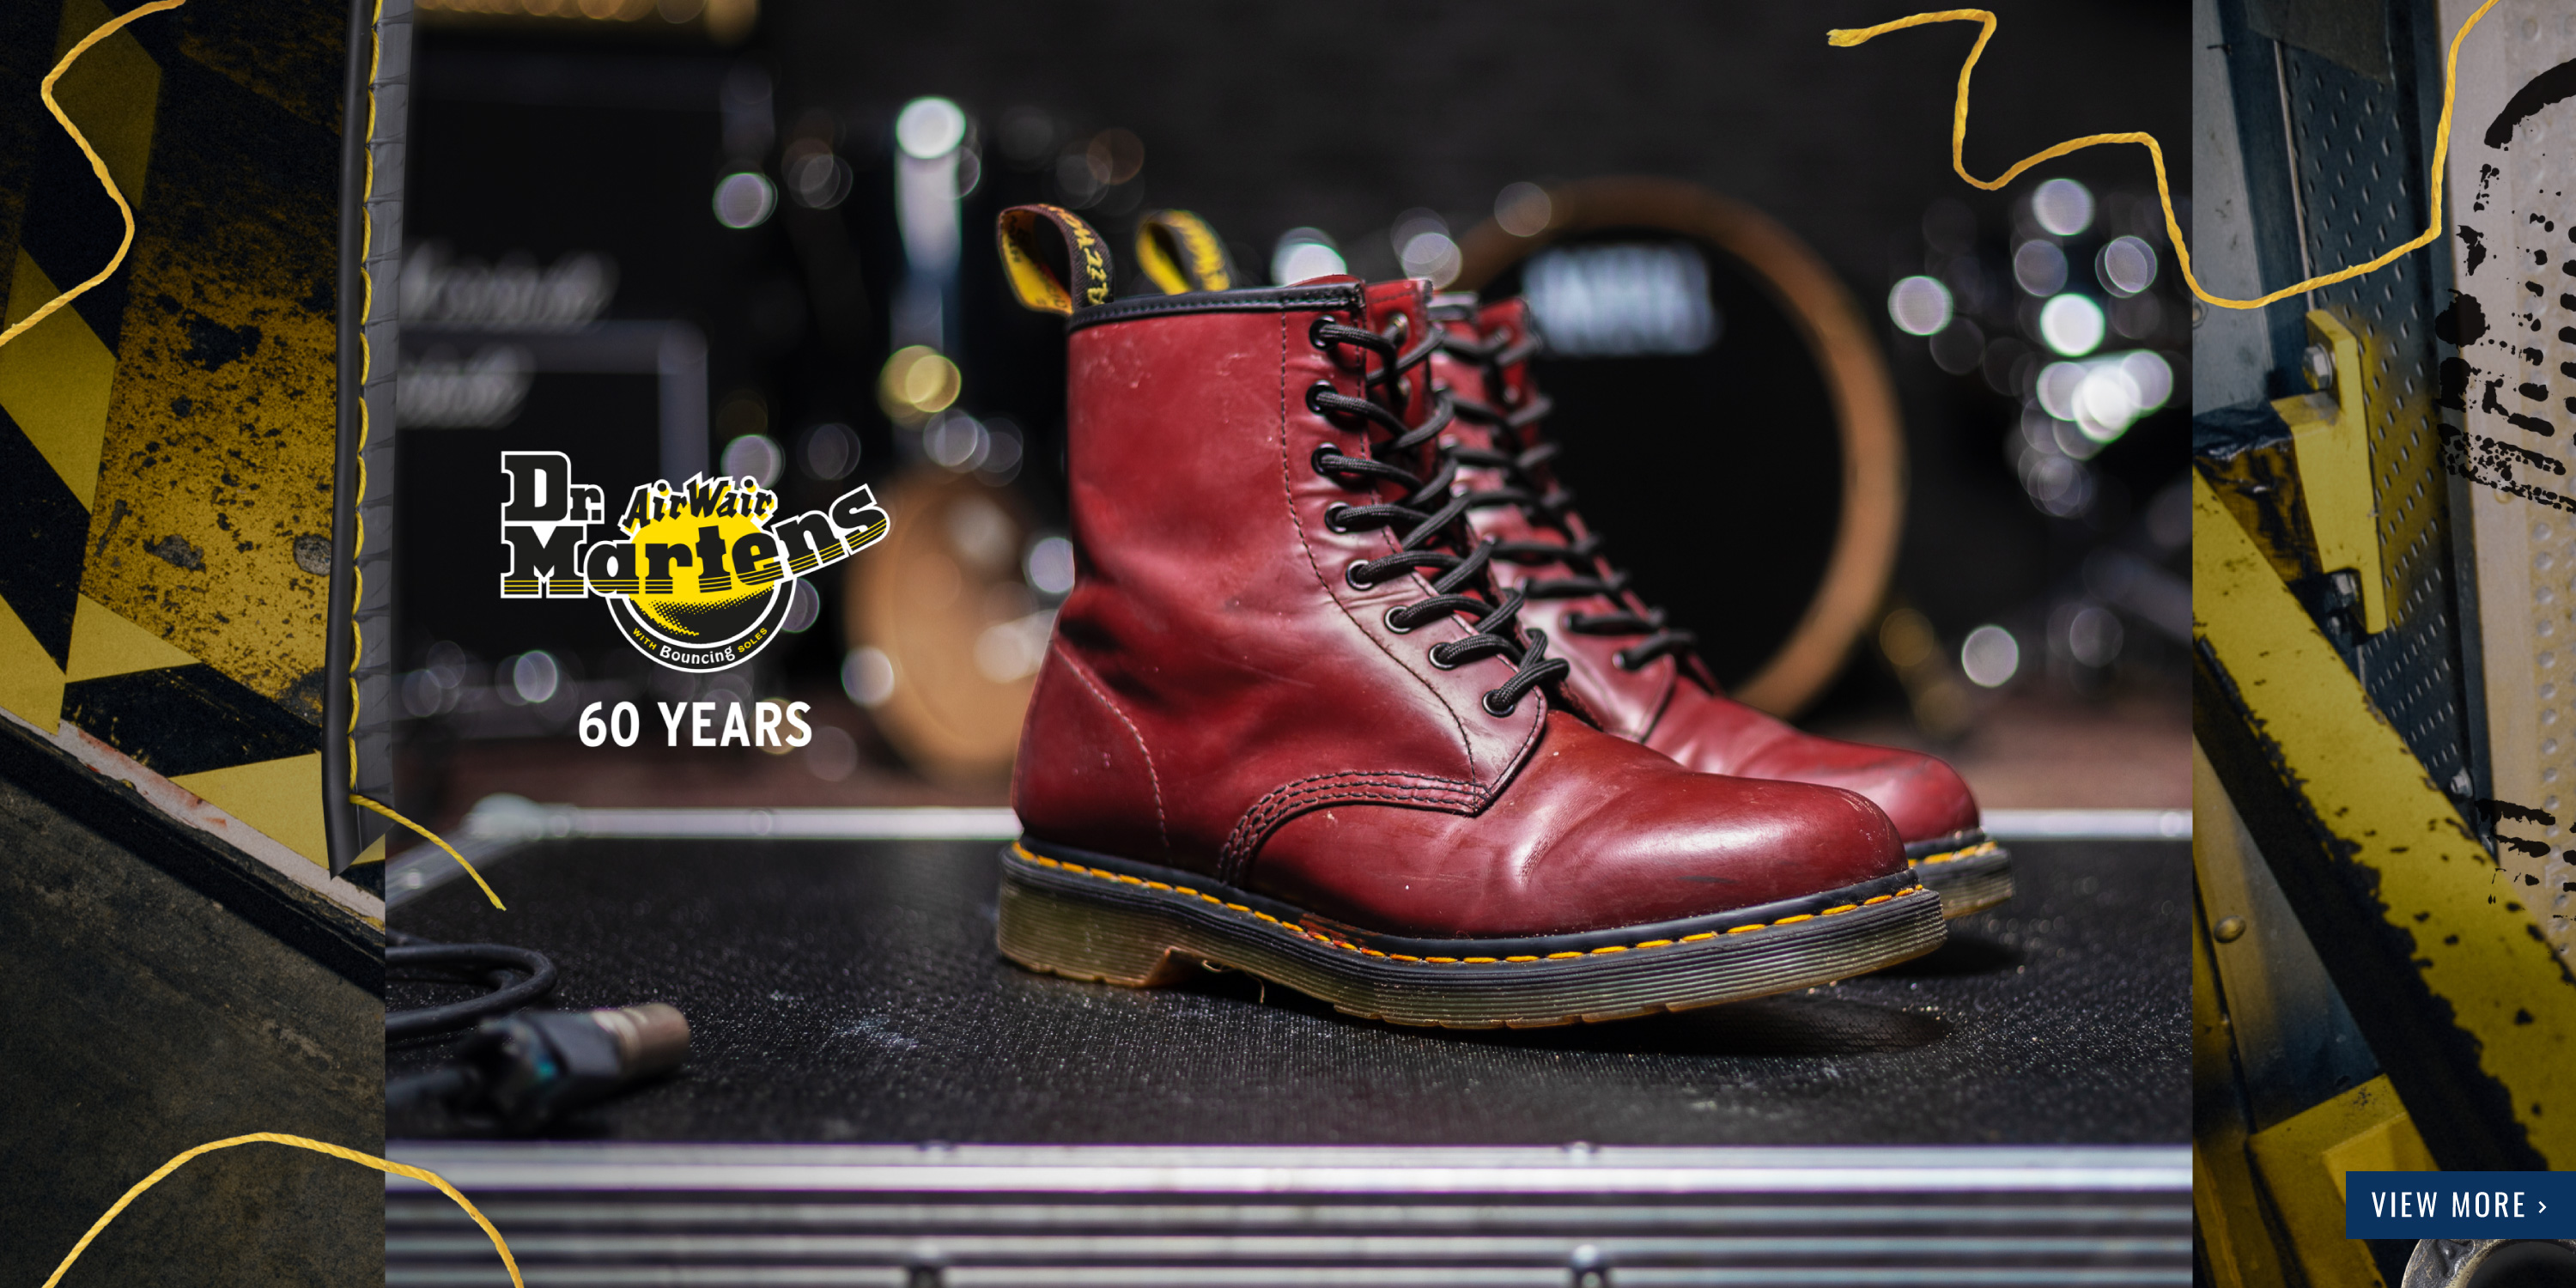 Dr.Martens 60 YEARS